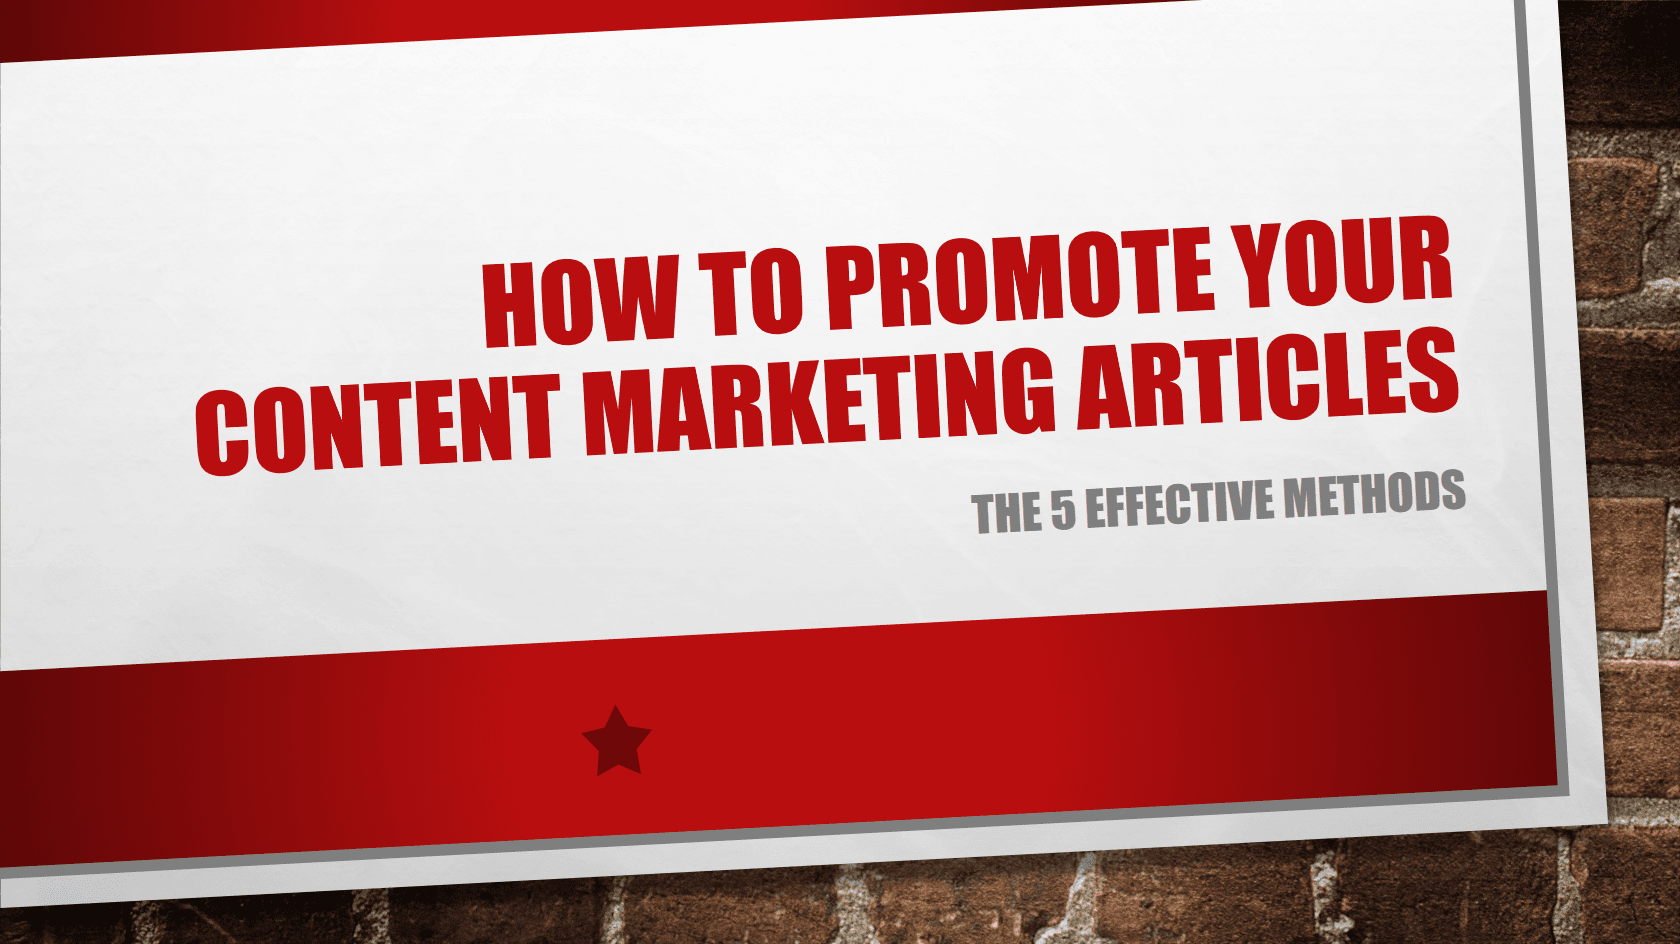 How To Promote Your Content Marketing Articles - The 5 Effective Methods